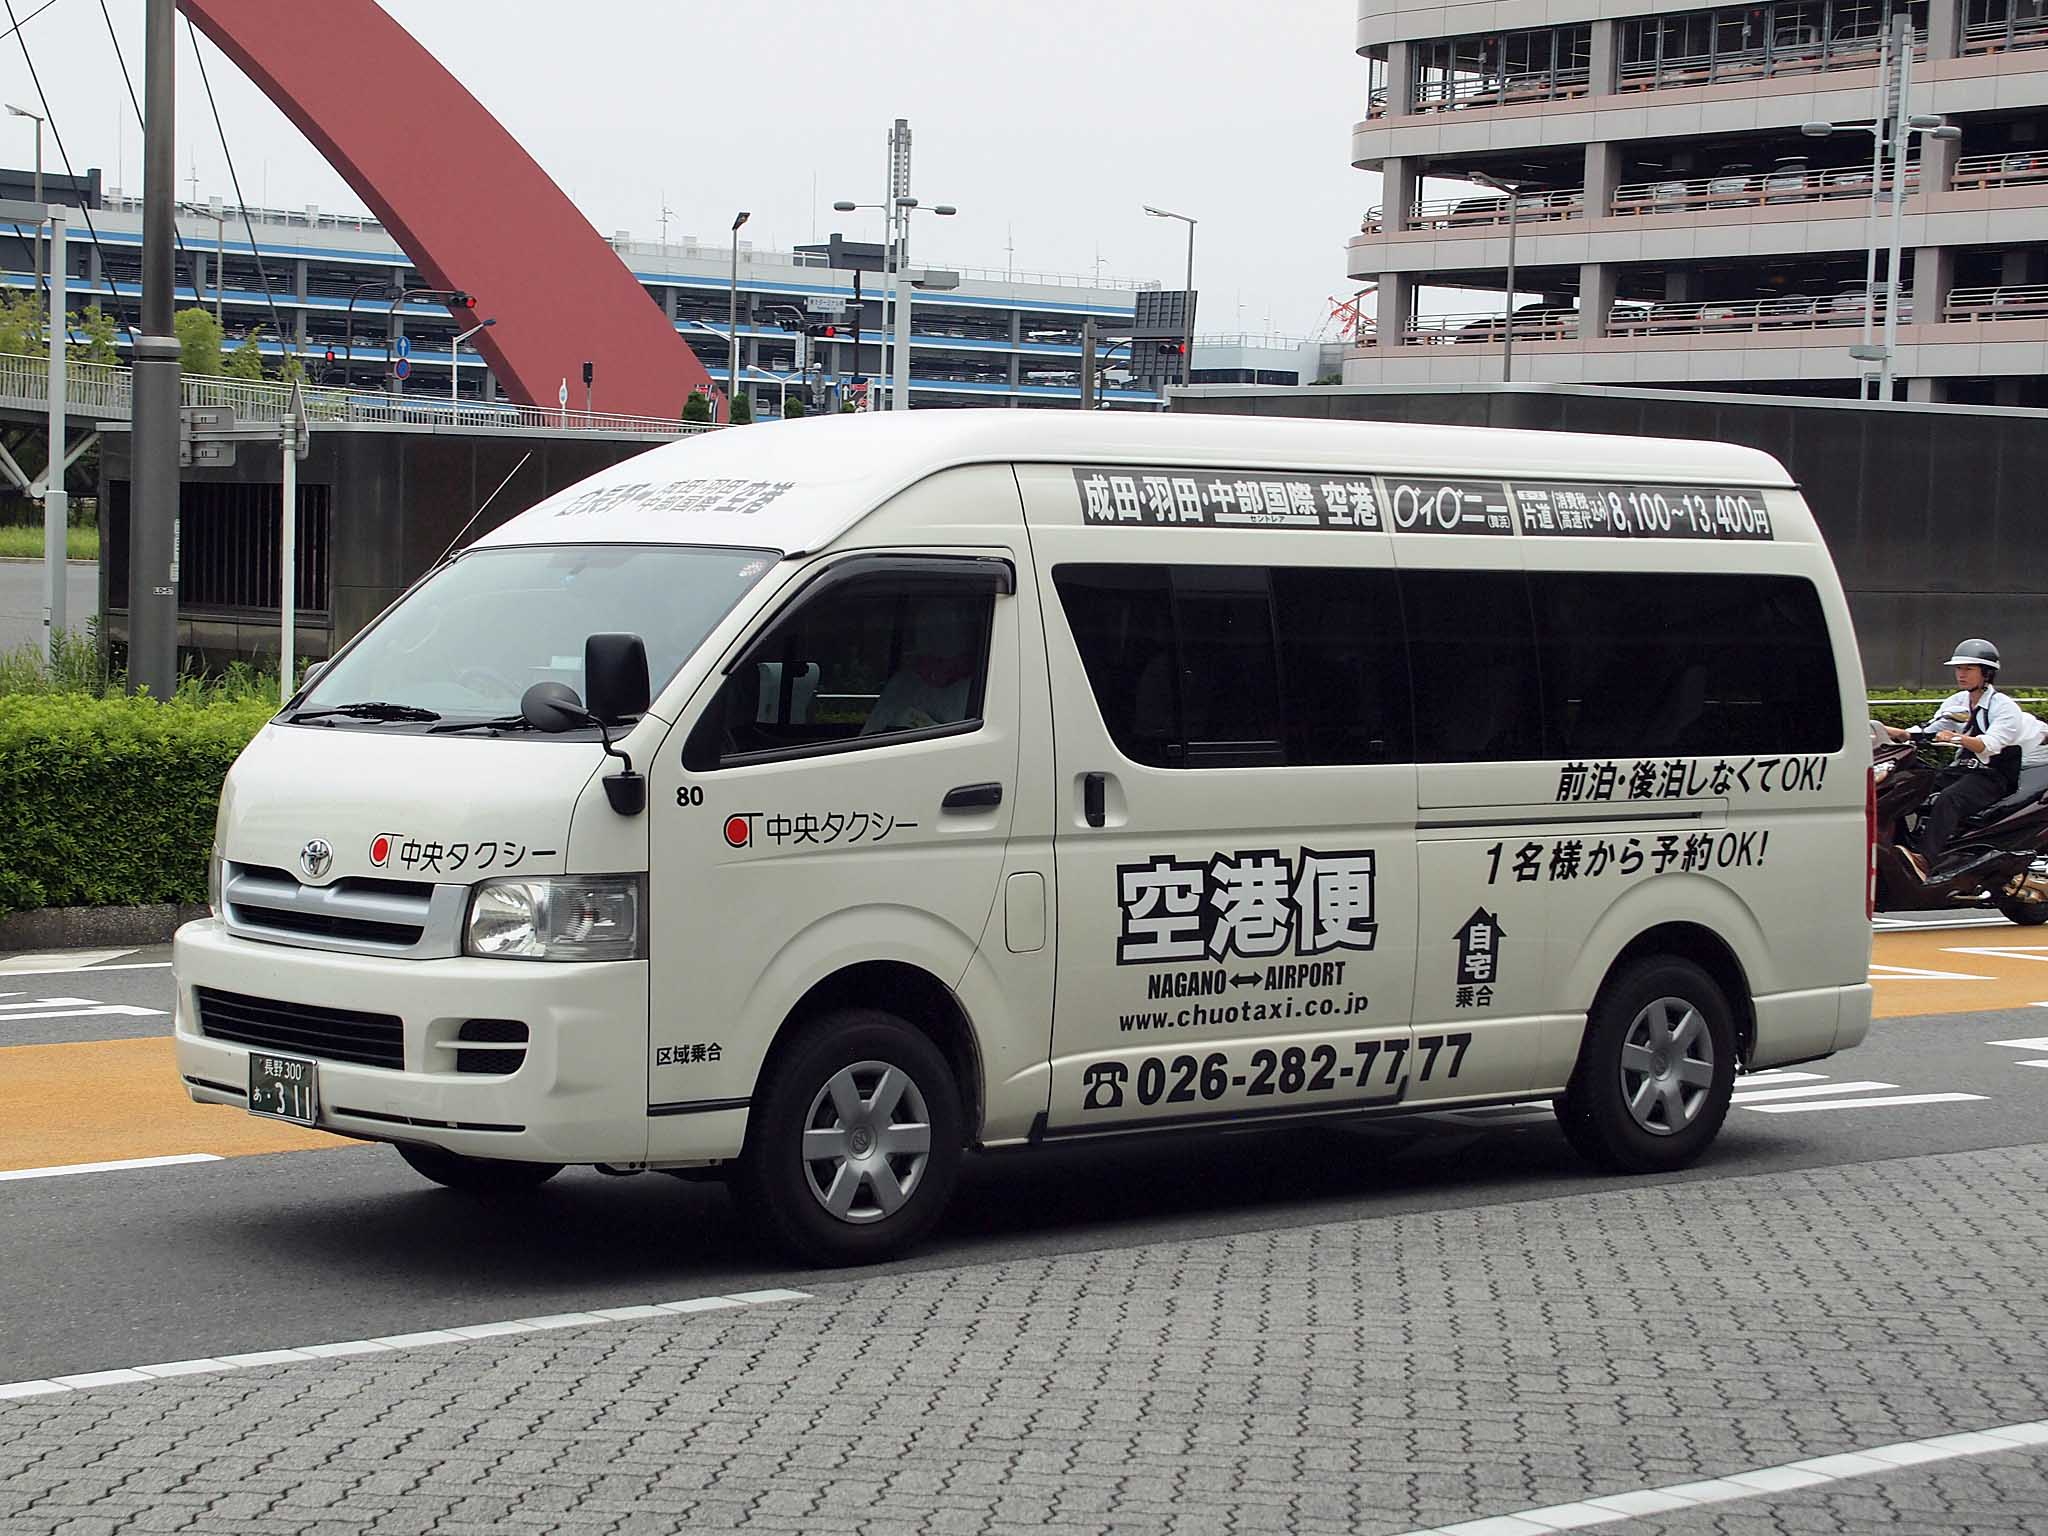 Chuo_Taxi_80_Airport_Shuttle_Hiace_Commuter-Copy